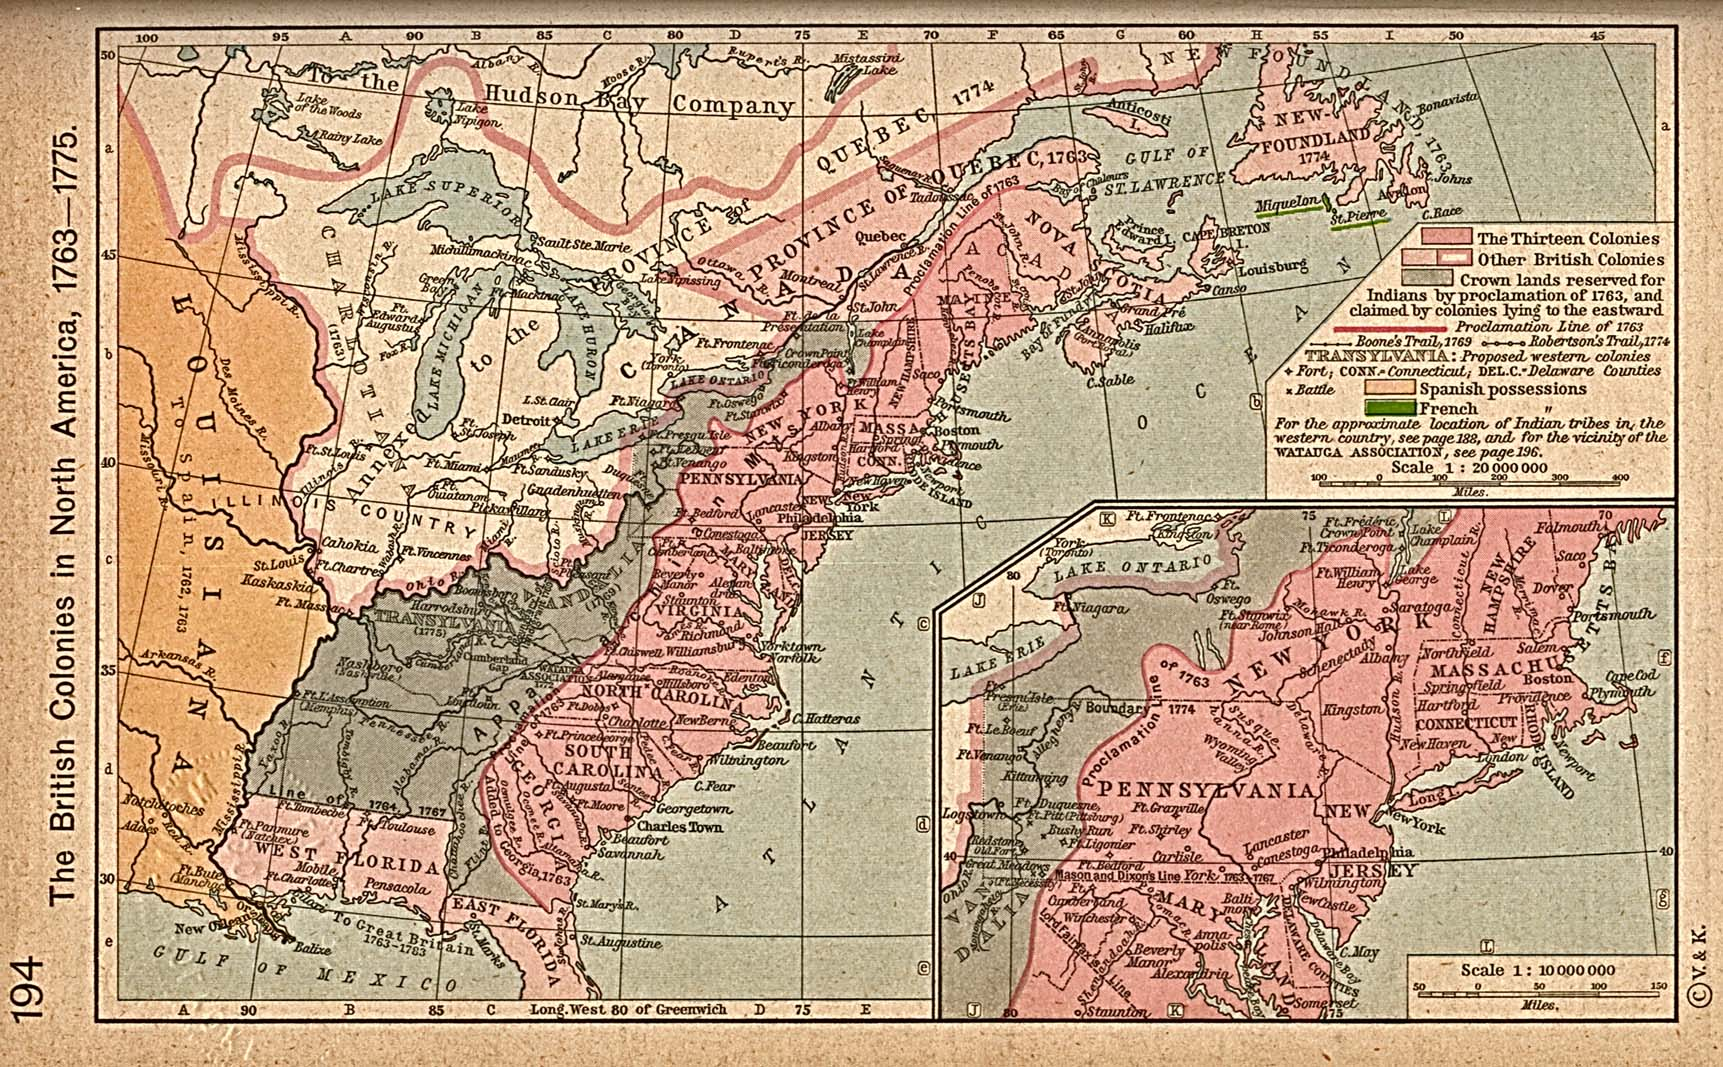 Map of the British Colonies in North America, 1763-1775